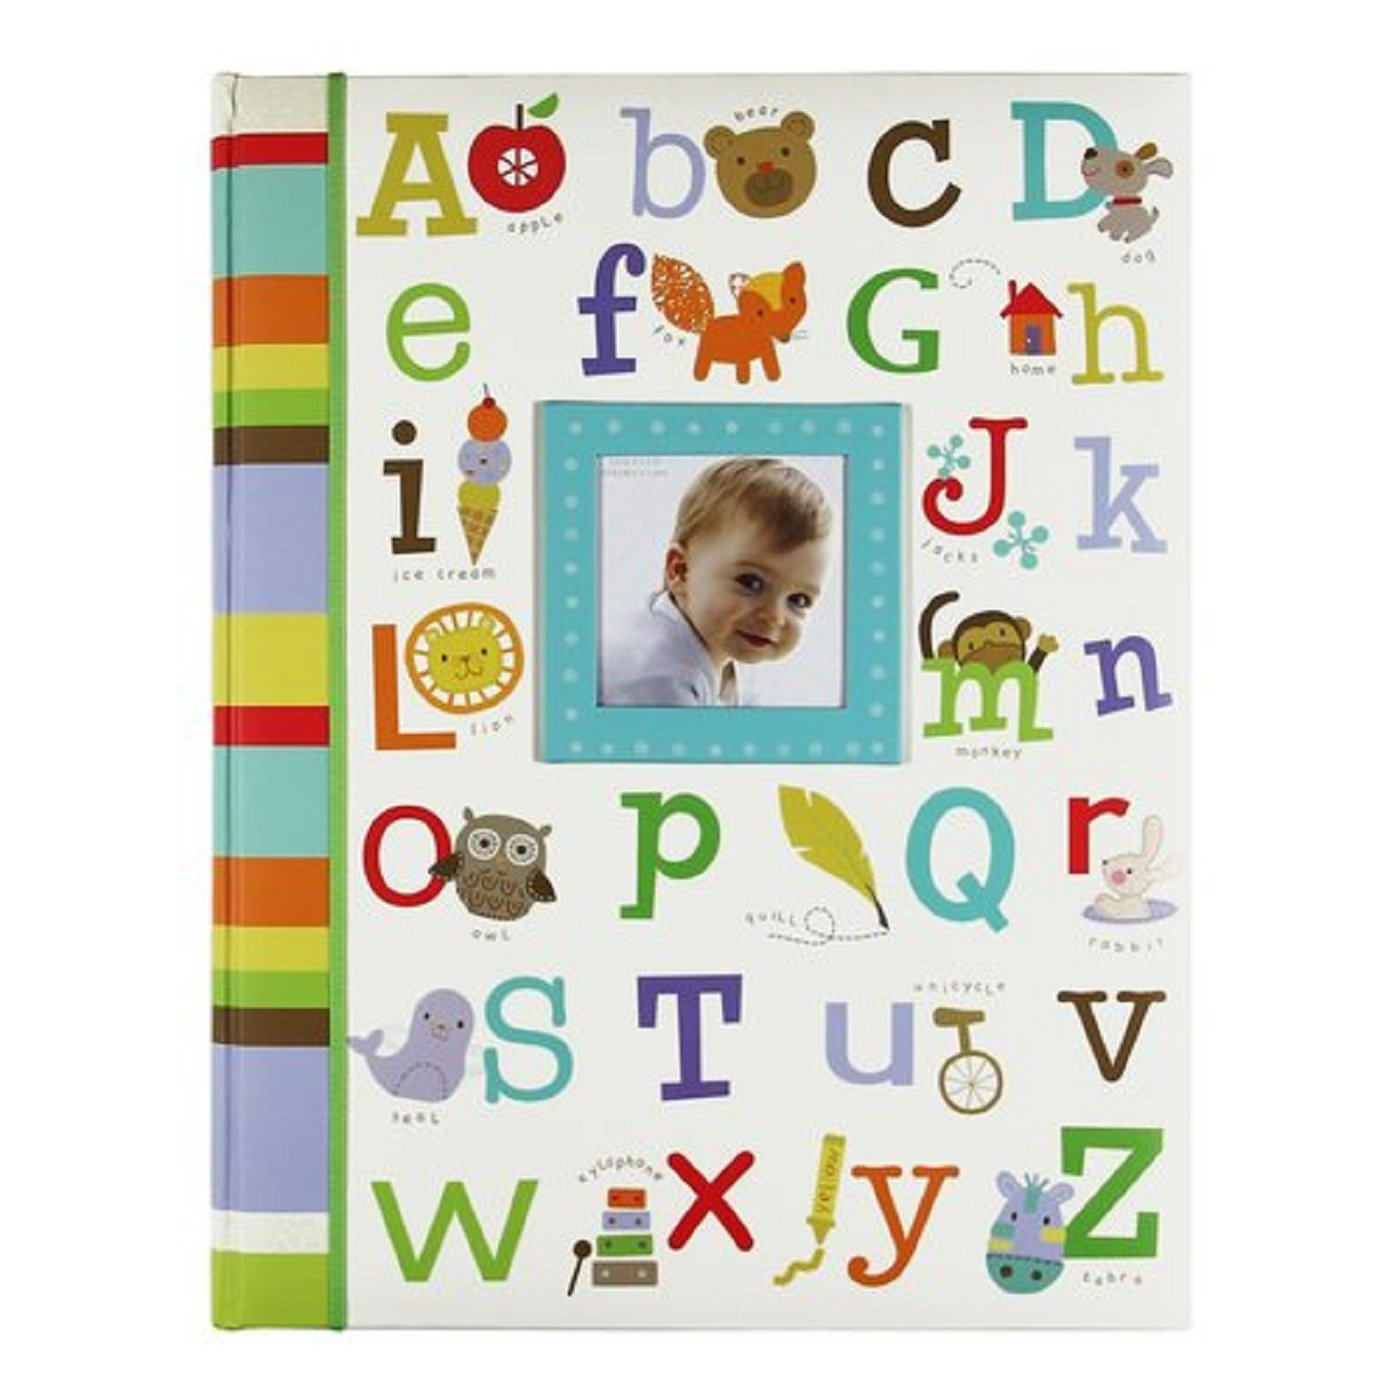 Baby's First Memory Book Alphabet w/ Pictures, Green, Blue, Brown, Yellow, Orange C.R. Gibson MB2-12025